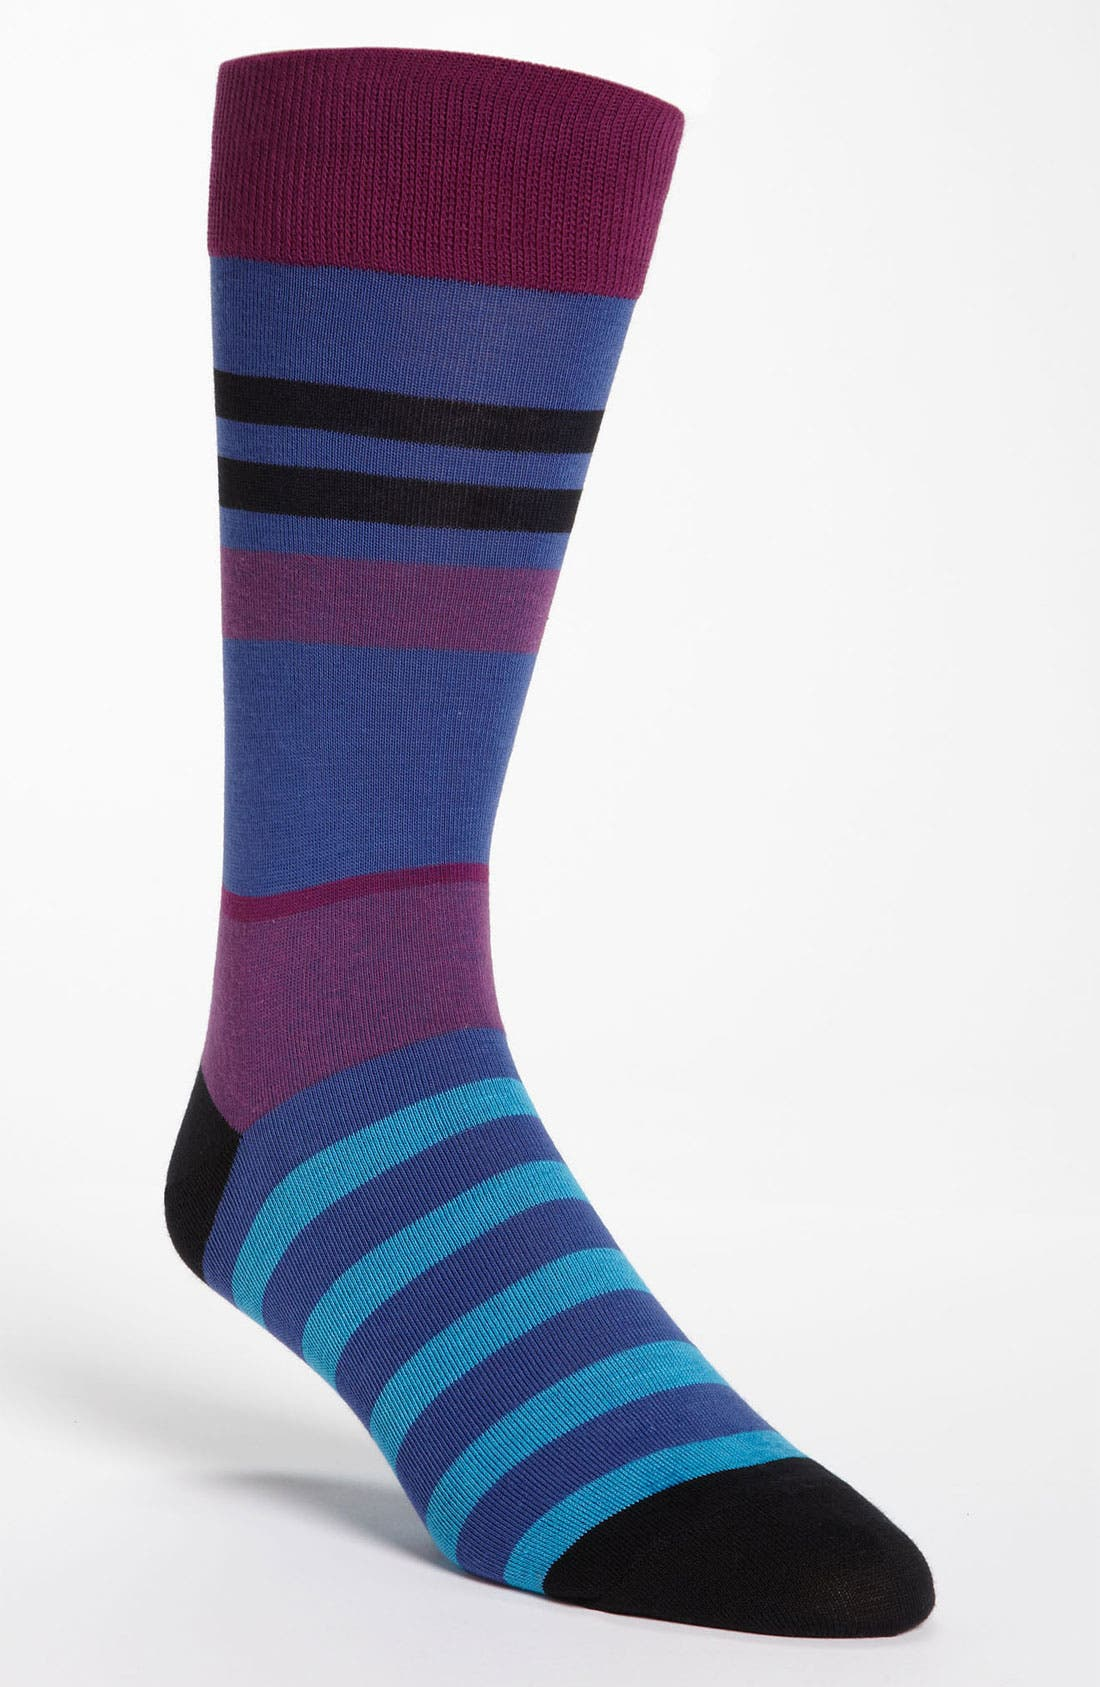 Main Image - Cole Haan Stripe Socks (3 for $27)